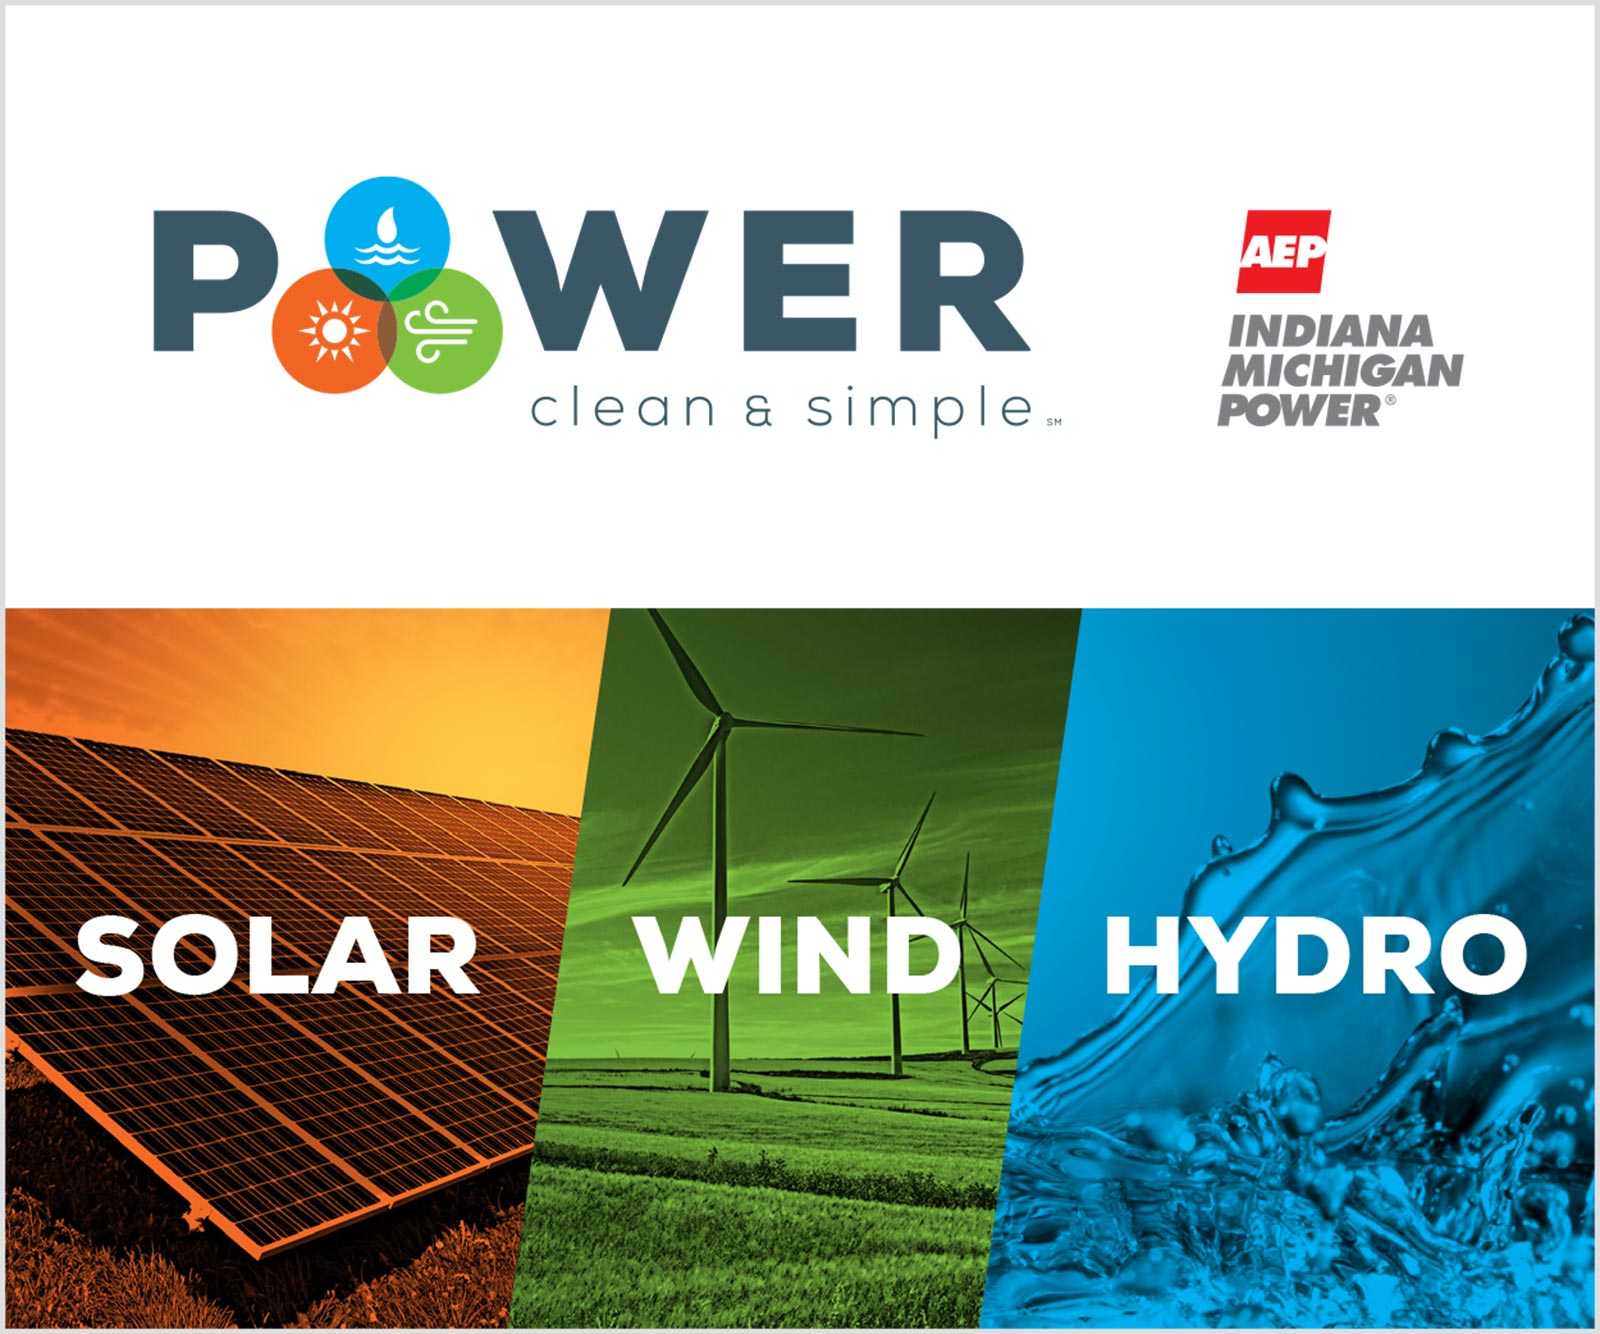 AEP Indiana Michigan Power, Digital Ad